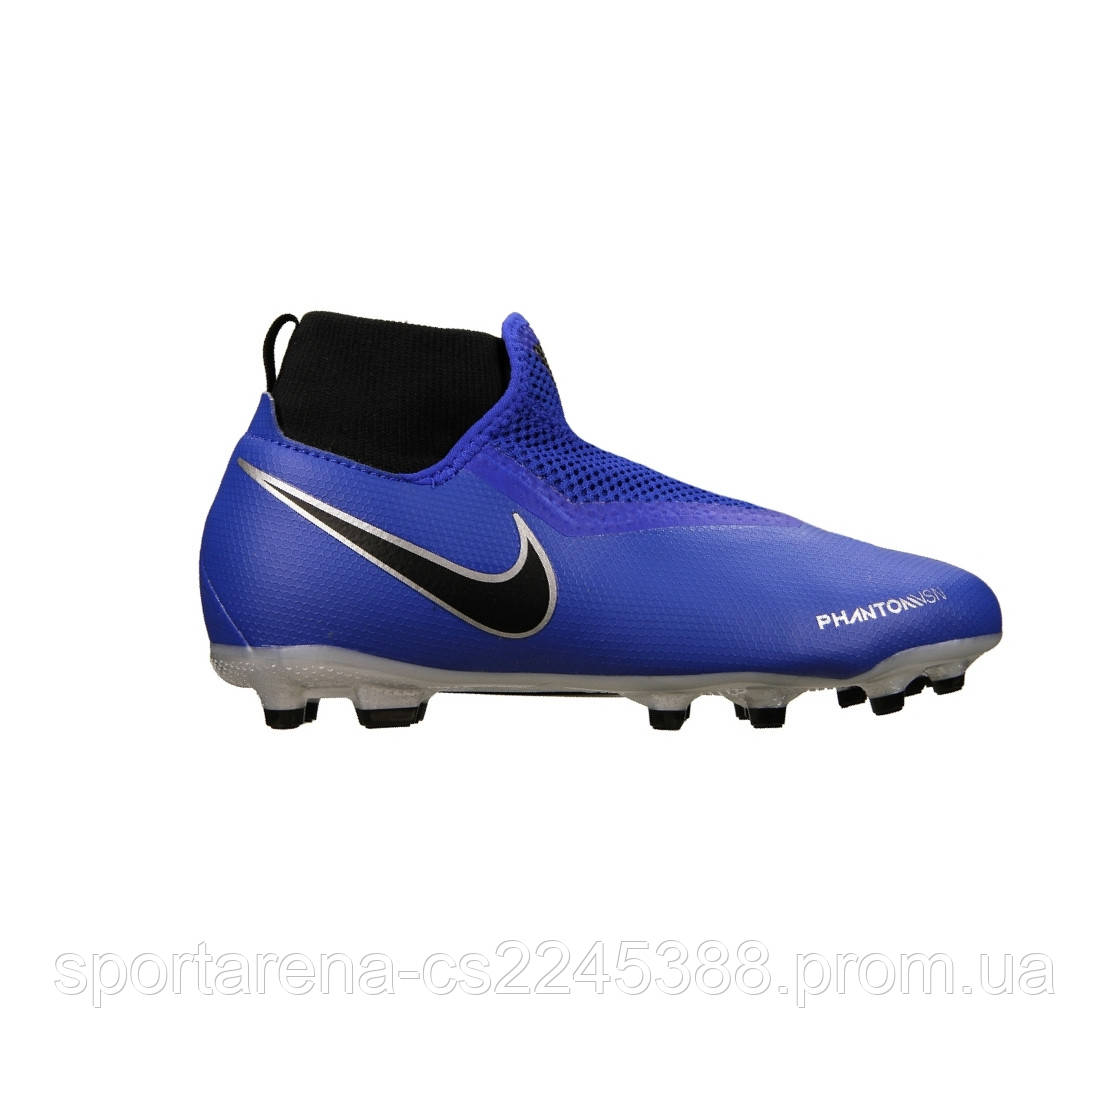 e3d1ecff295a Бутсы детские Nike JR Phantom Vsn DF MG AO3287-400 - СПОРТАРЕНА в Днепре